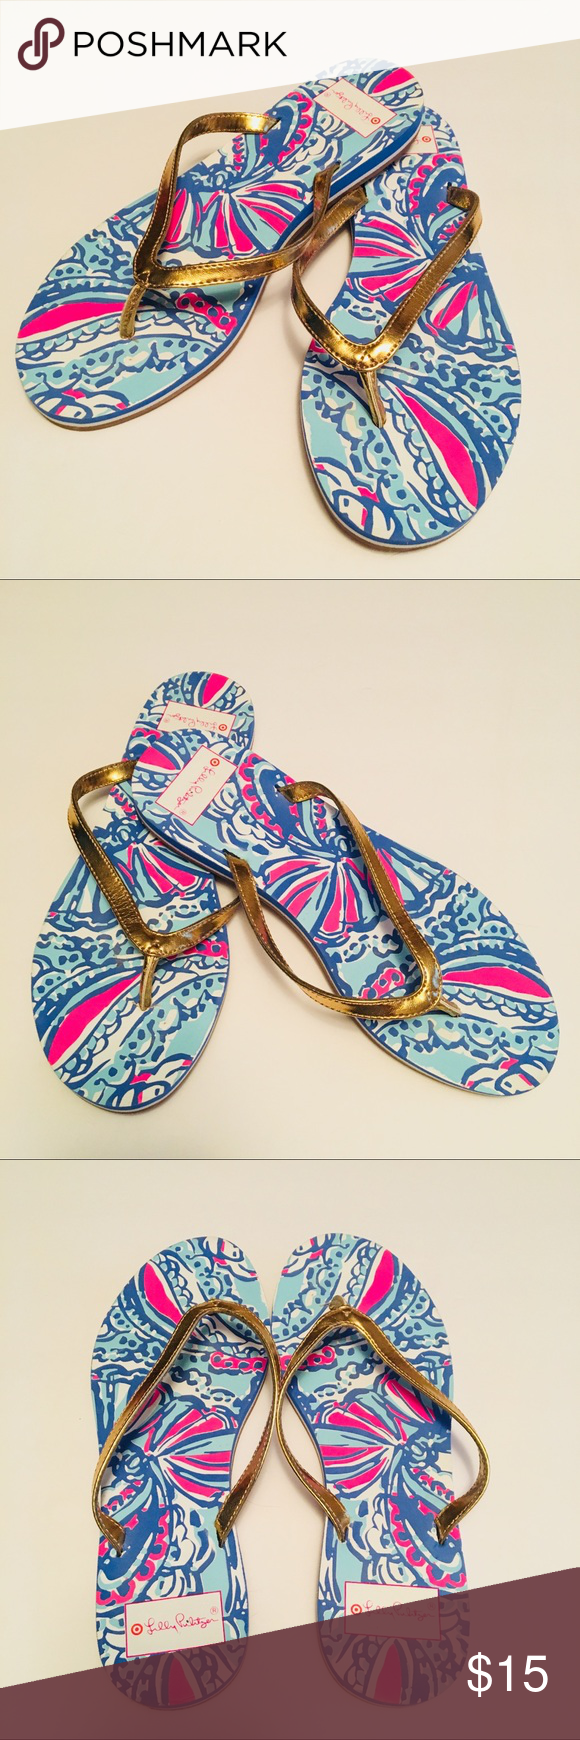 e76745f3afc1 Lilly Pulitzer for Target Sea Shell print sandals Iconic Lilly Pulitzer  sandal flip flops to relax by the pool or beach. Lilly Pulitzer for Target  Shoes ...